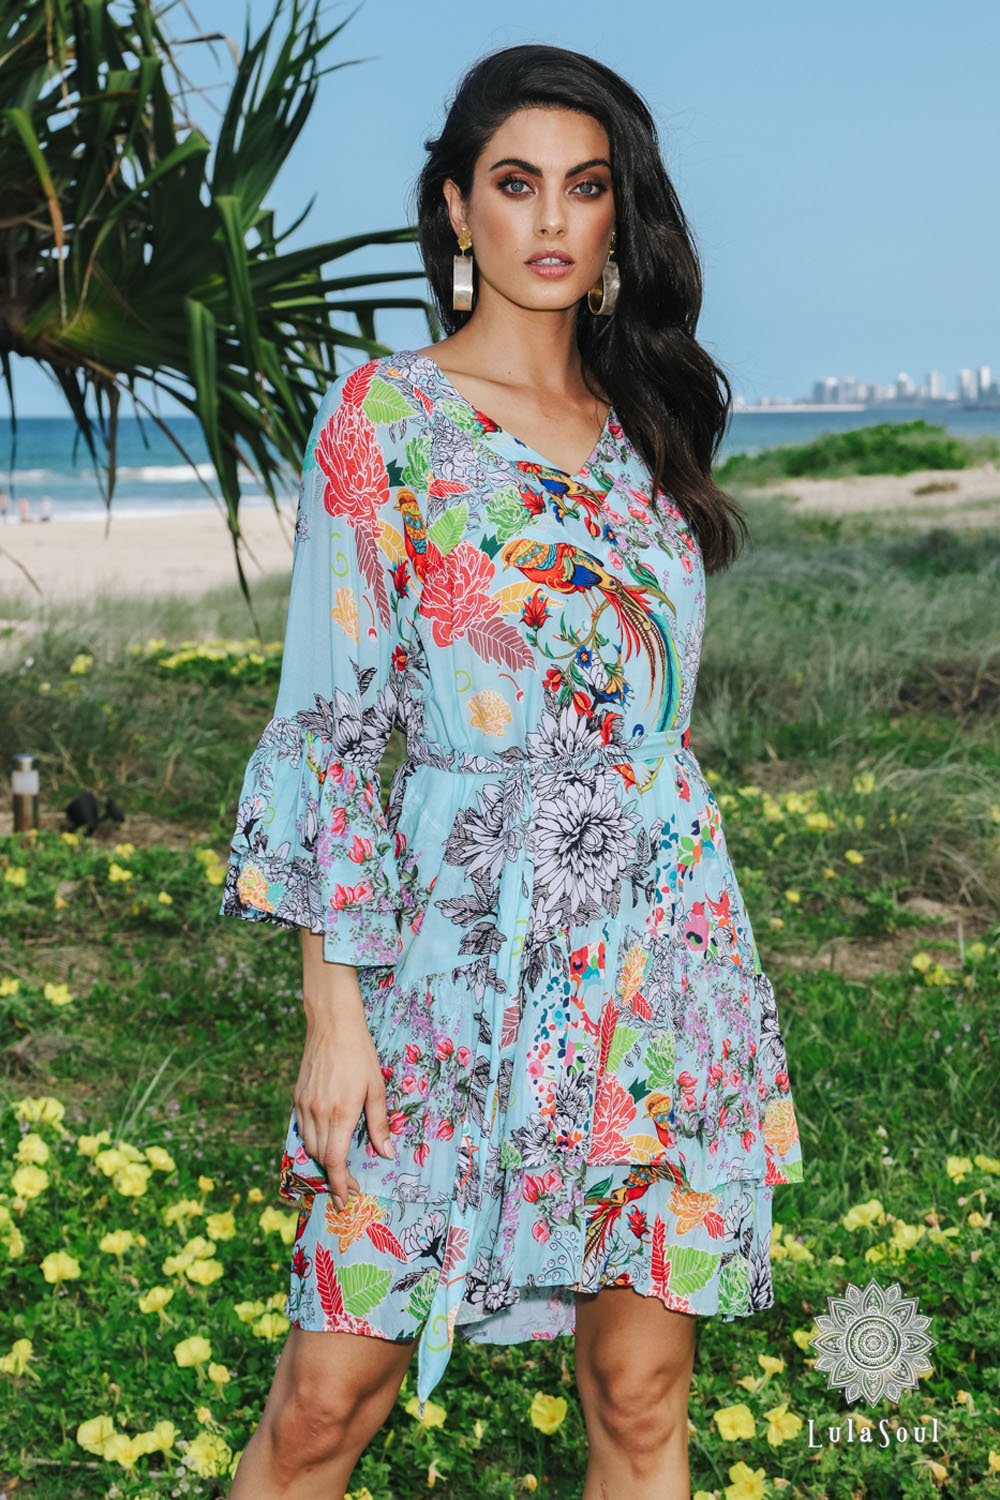 Lulasoul Poly Dress Mint collection Aug-20